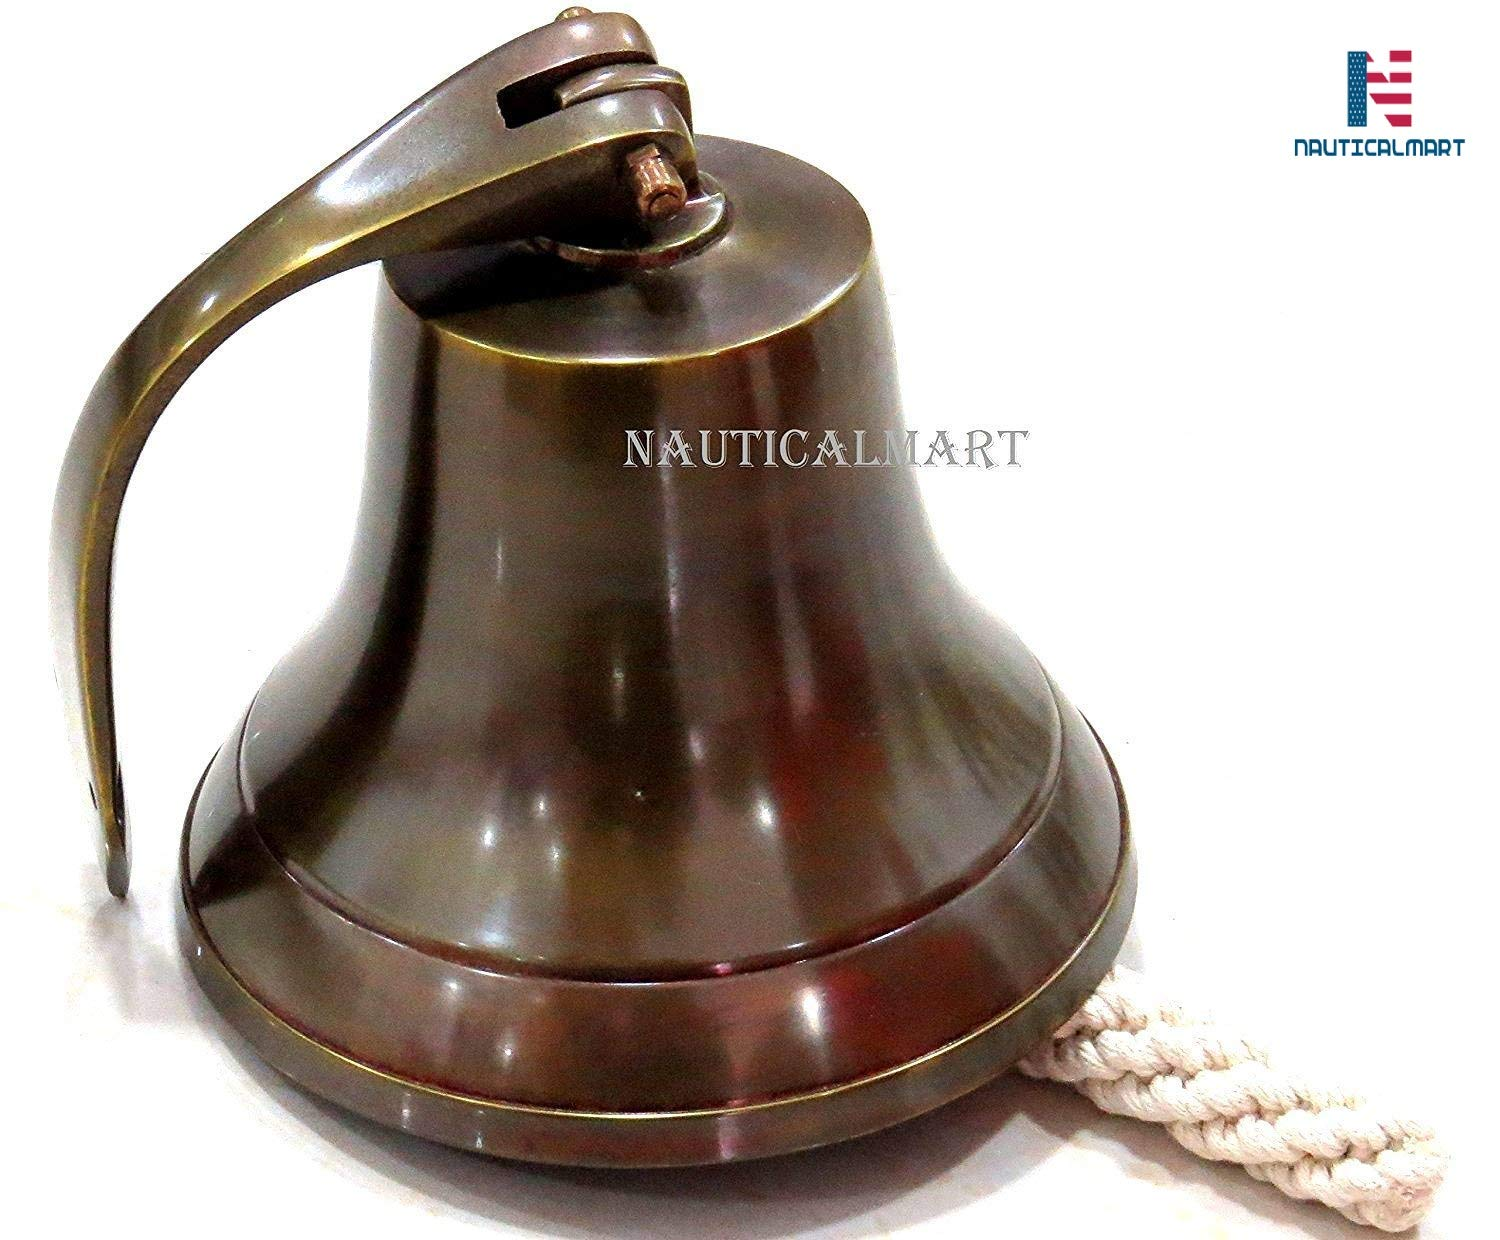 NauticalMart 6'' Nautical Aluminum Ship Bell with Antique Finish Beautiful by NauticalMart